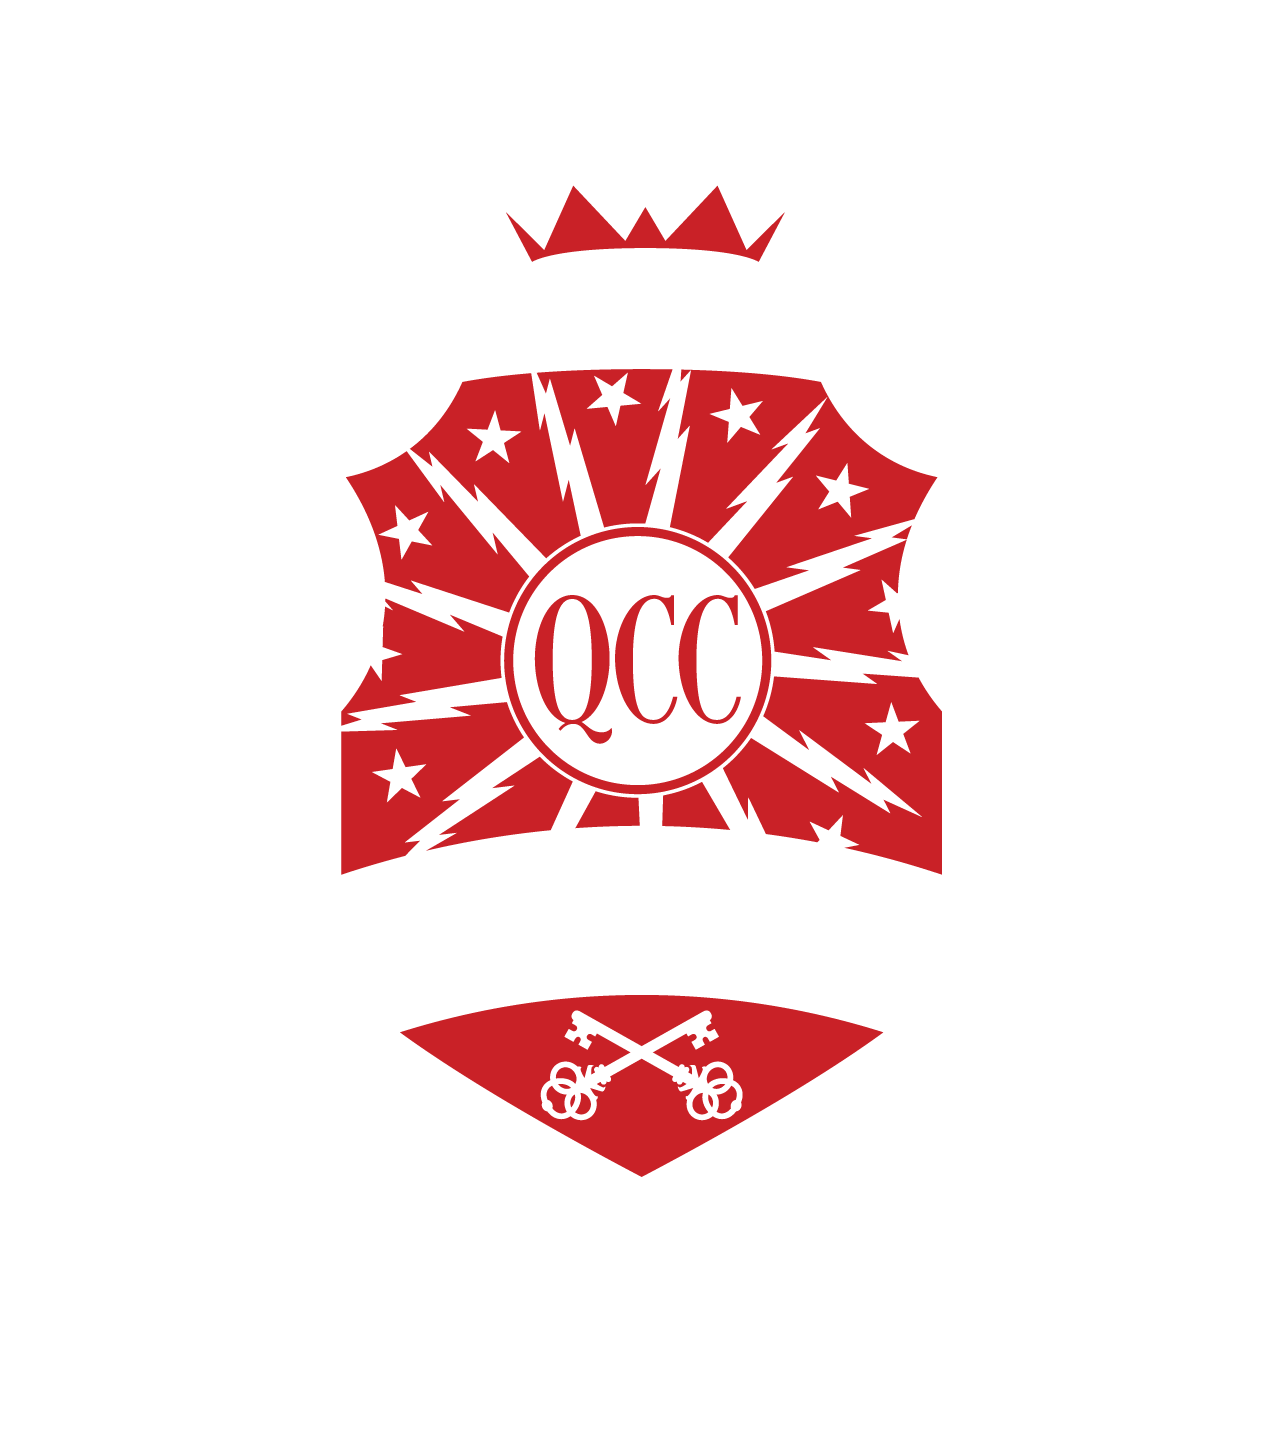 QUEEN CITY COLLABORATIVE